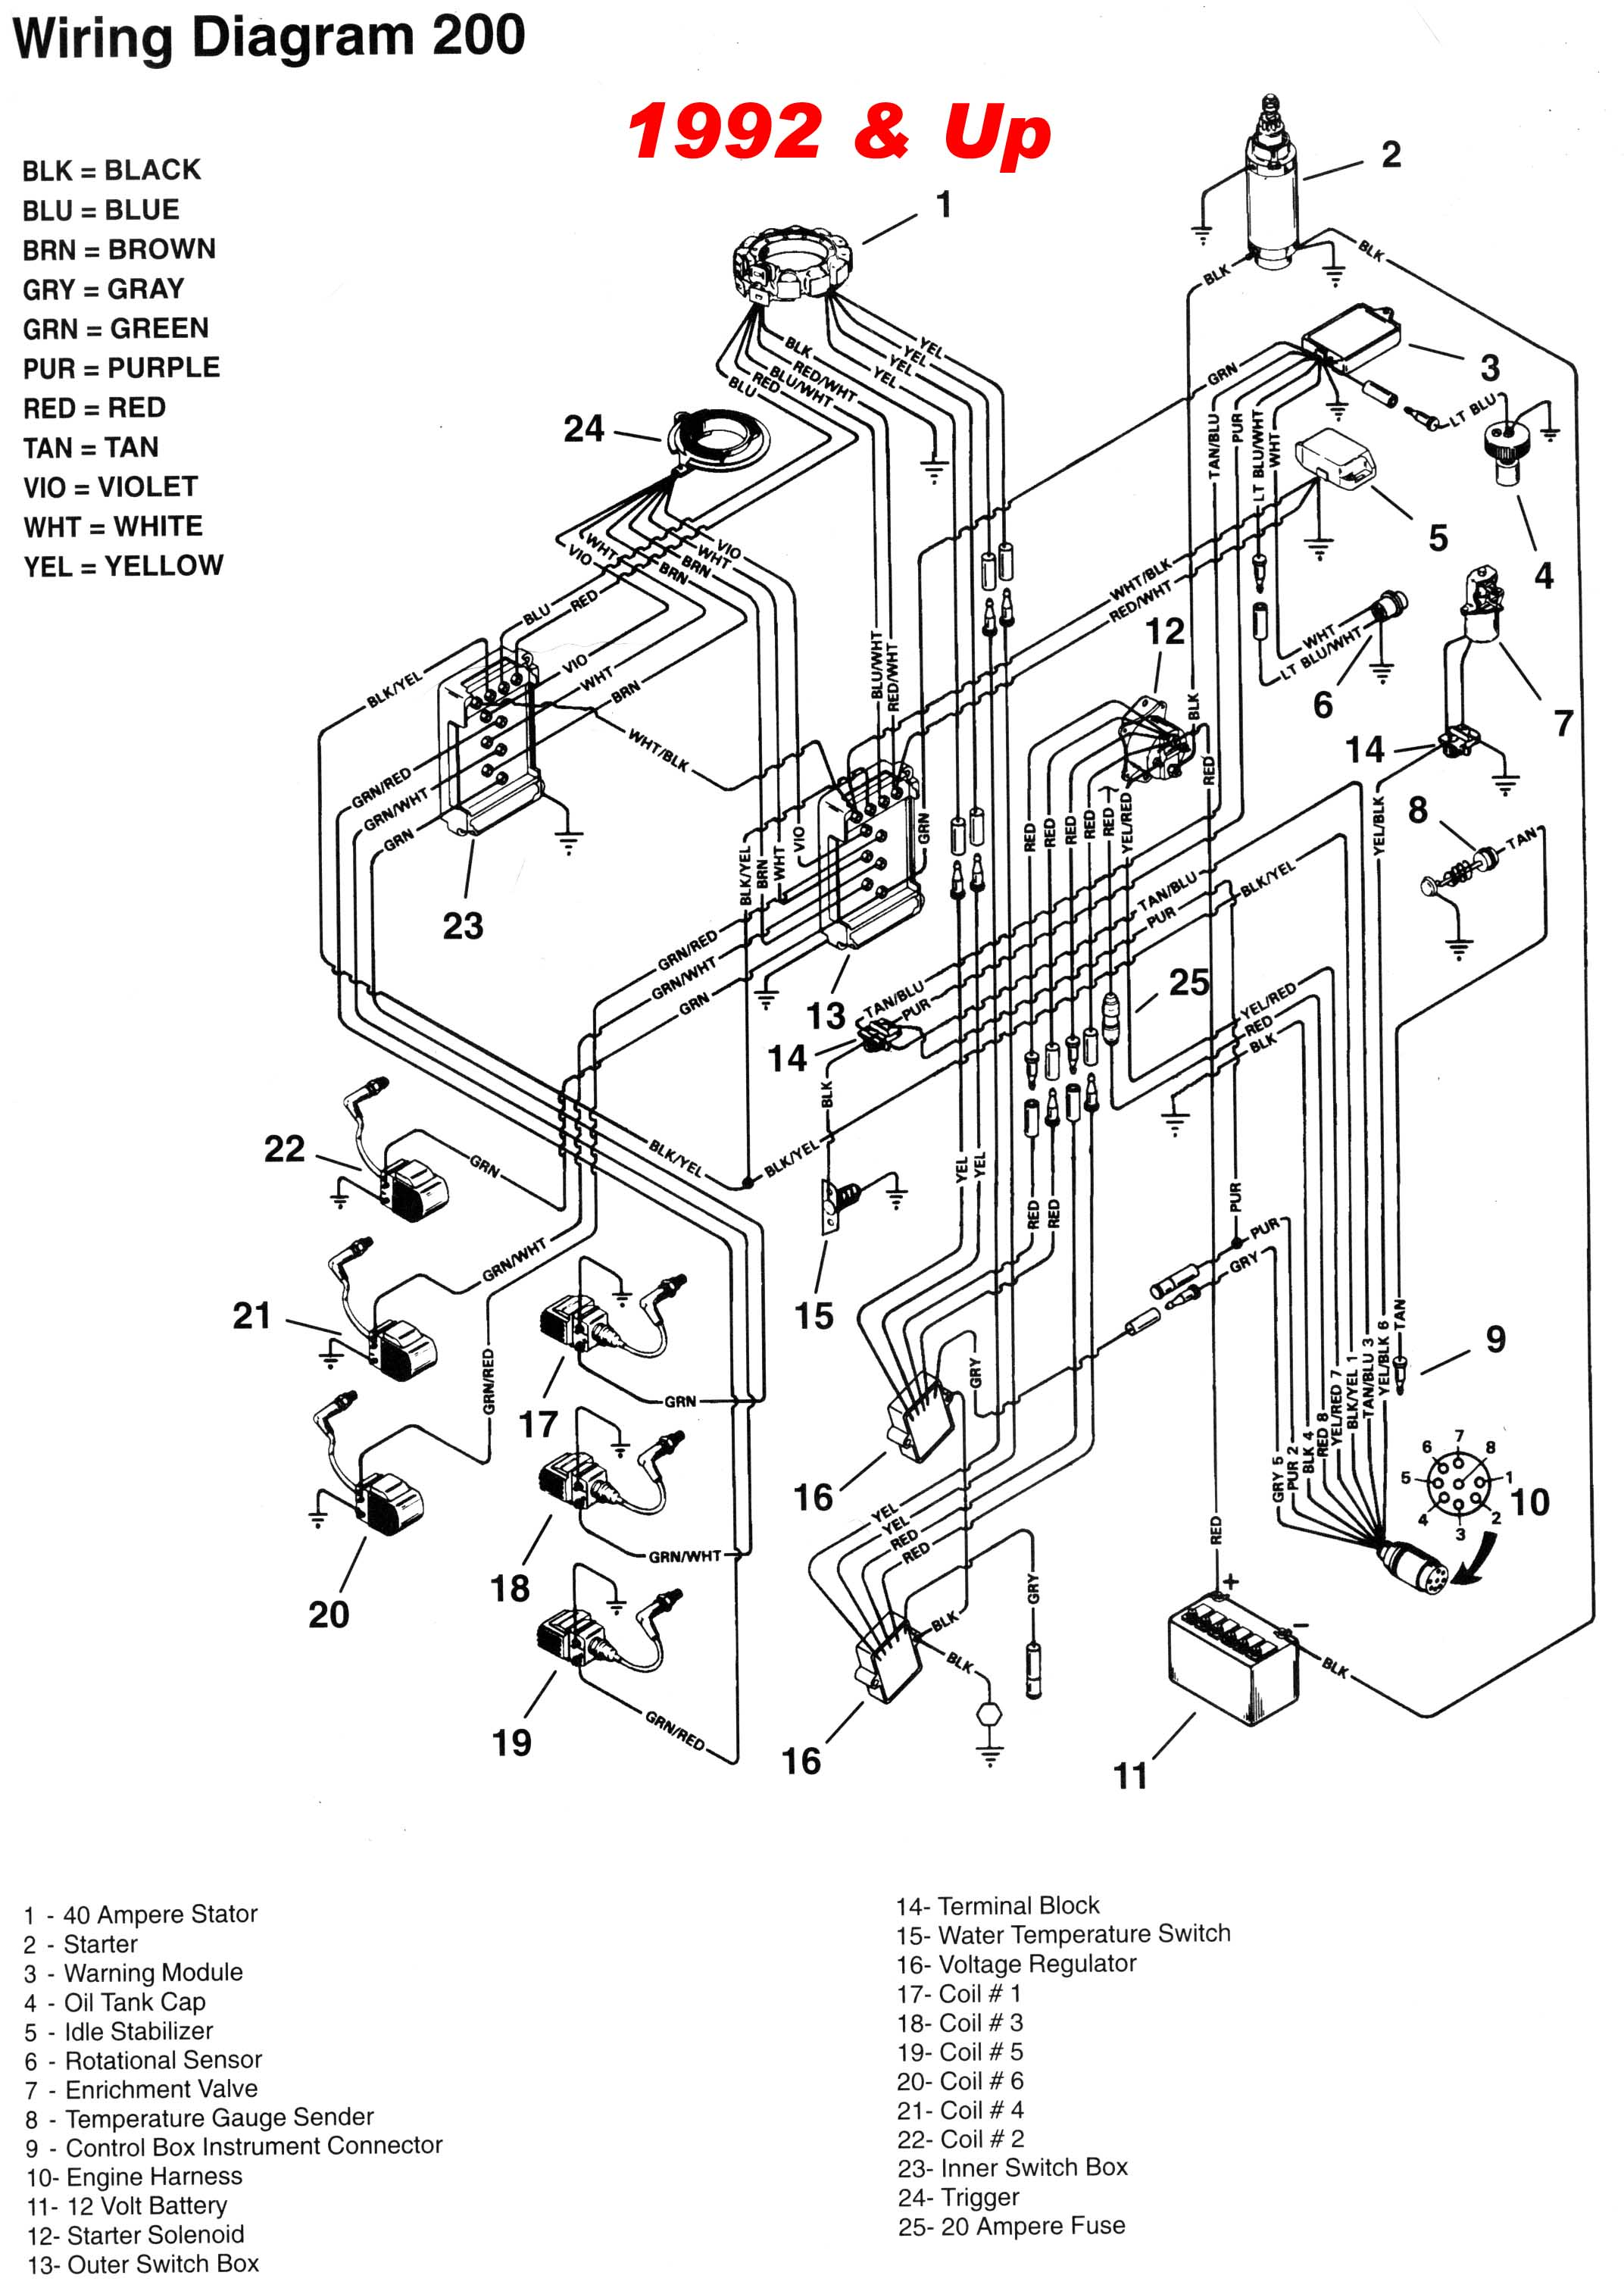 mercury_92up_200_wiring mercury outboard 2 5 and 3 0l v6 and gearcase faq yamaha 200 outboard wiring diagram at nearapp.co